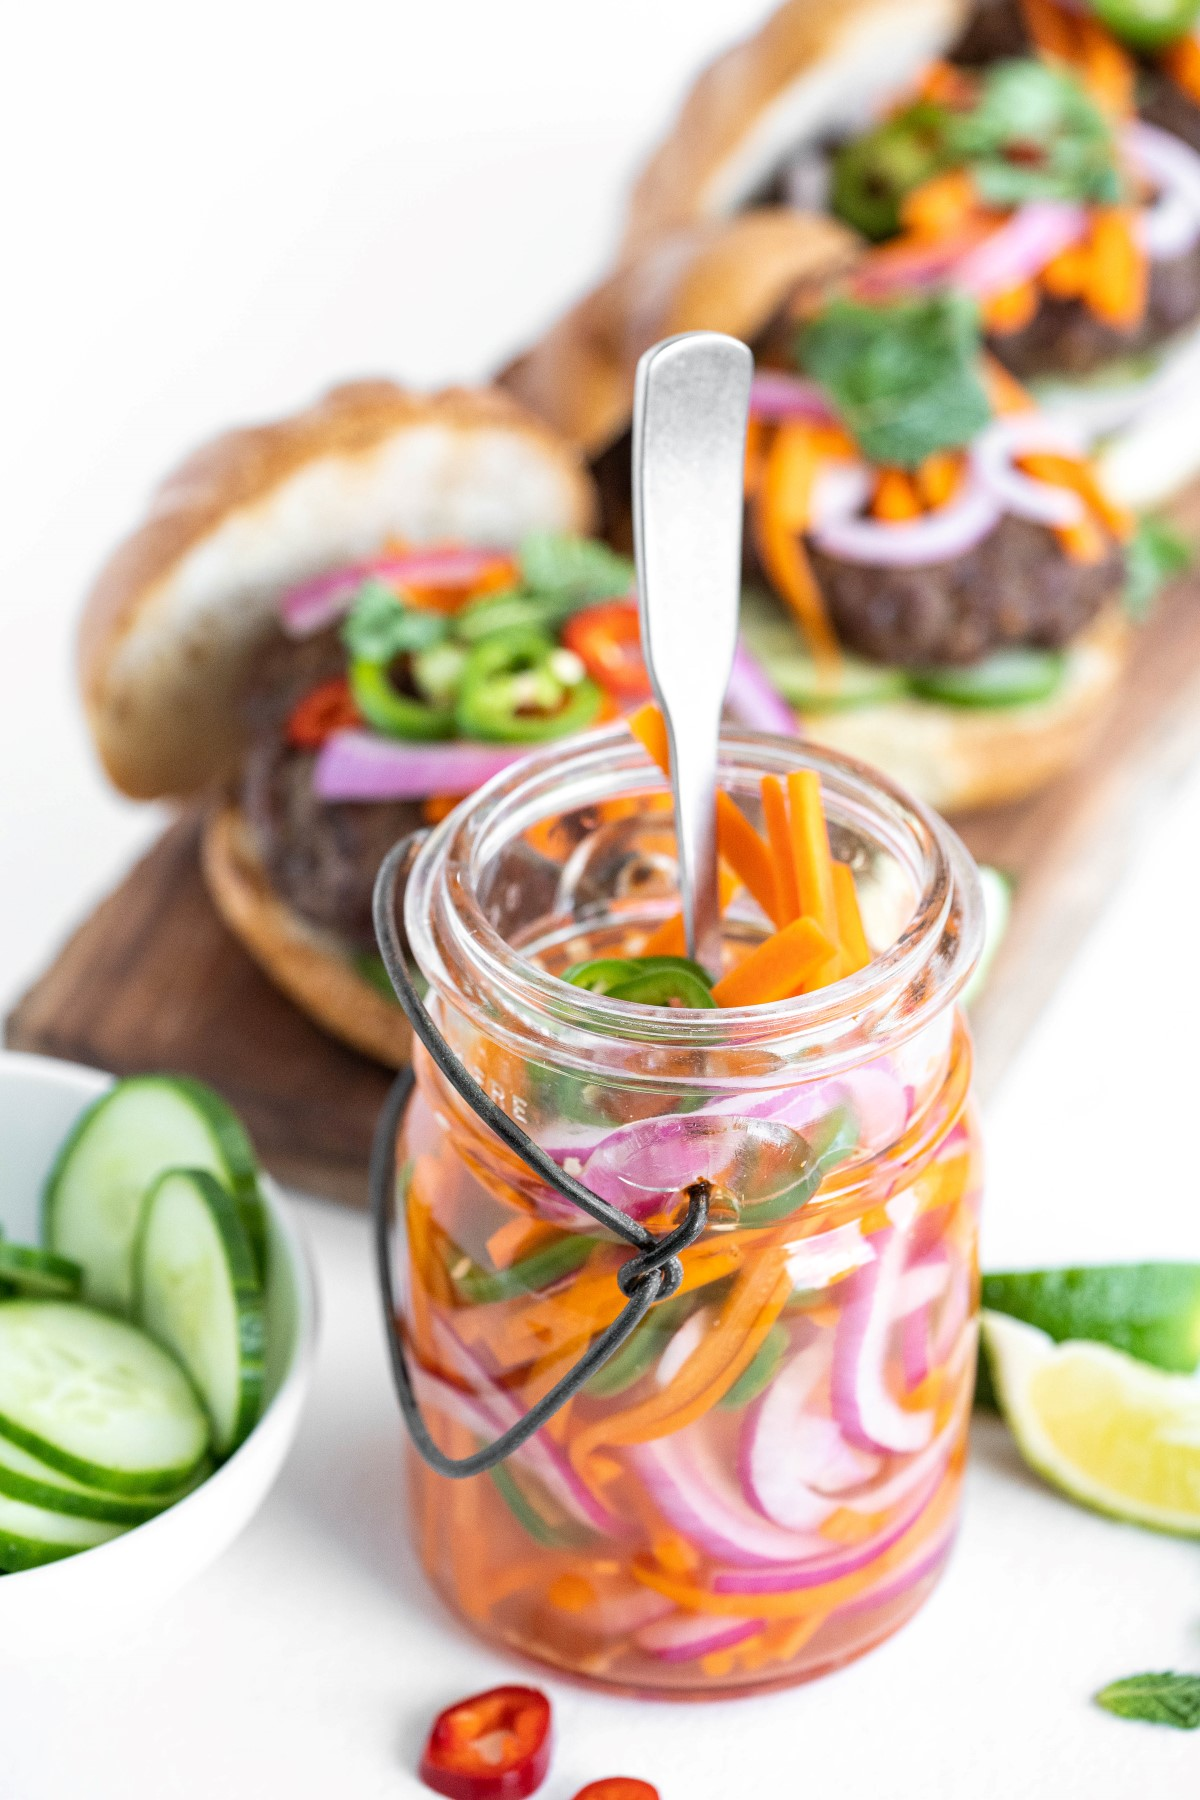 Jar of quick pickled vegetables with a fork in the jar and 2 burgers topped with pickled veggies in the background.